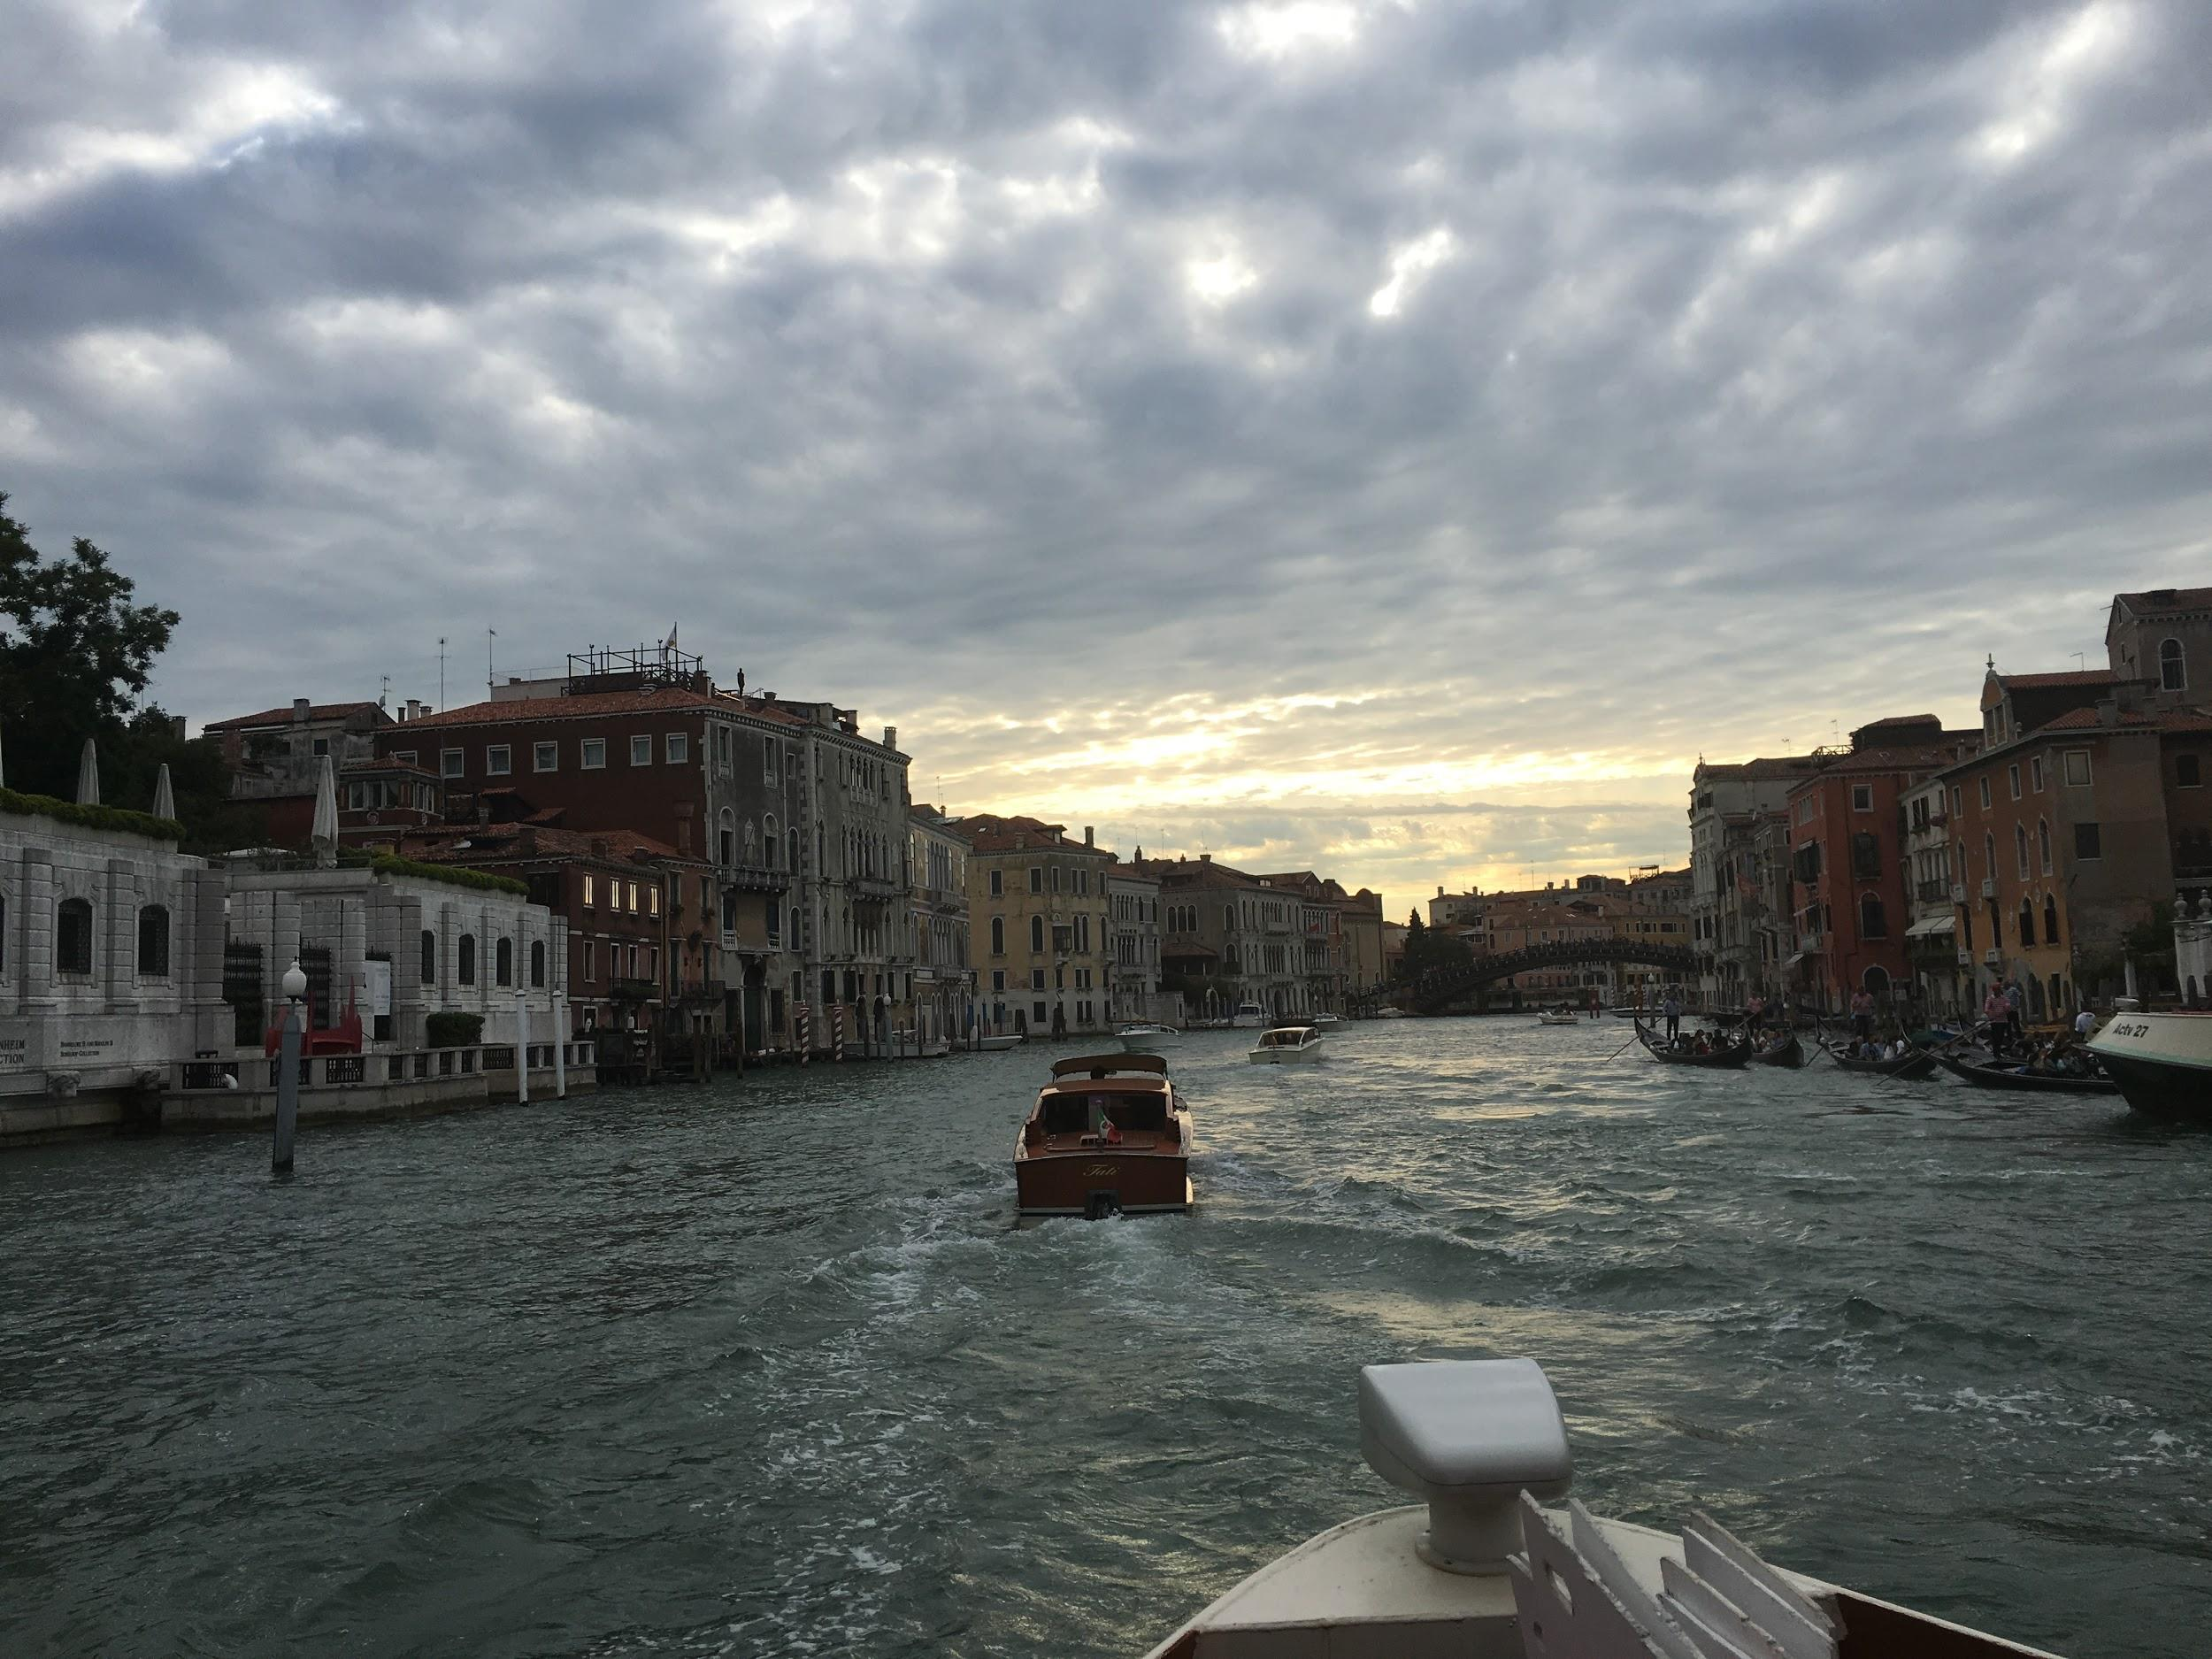 This summer I got the chance to take a boat ride on the Grand Canal in Venice which topped my entire trip to Italy. (VENOOS MOSHAYEDI)